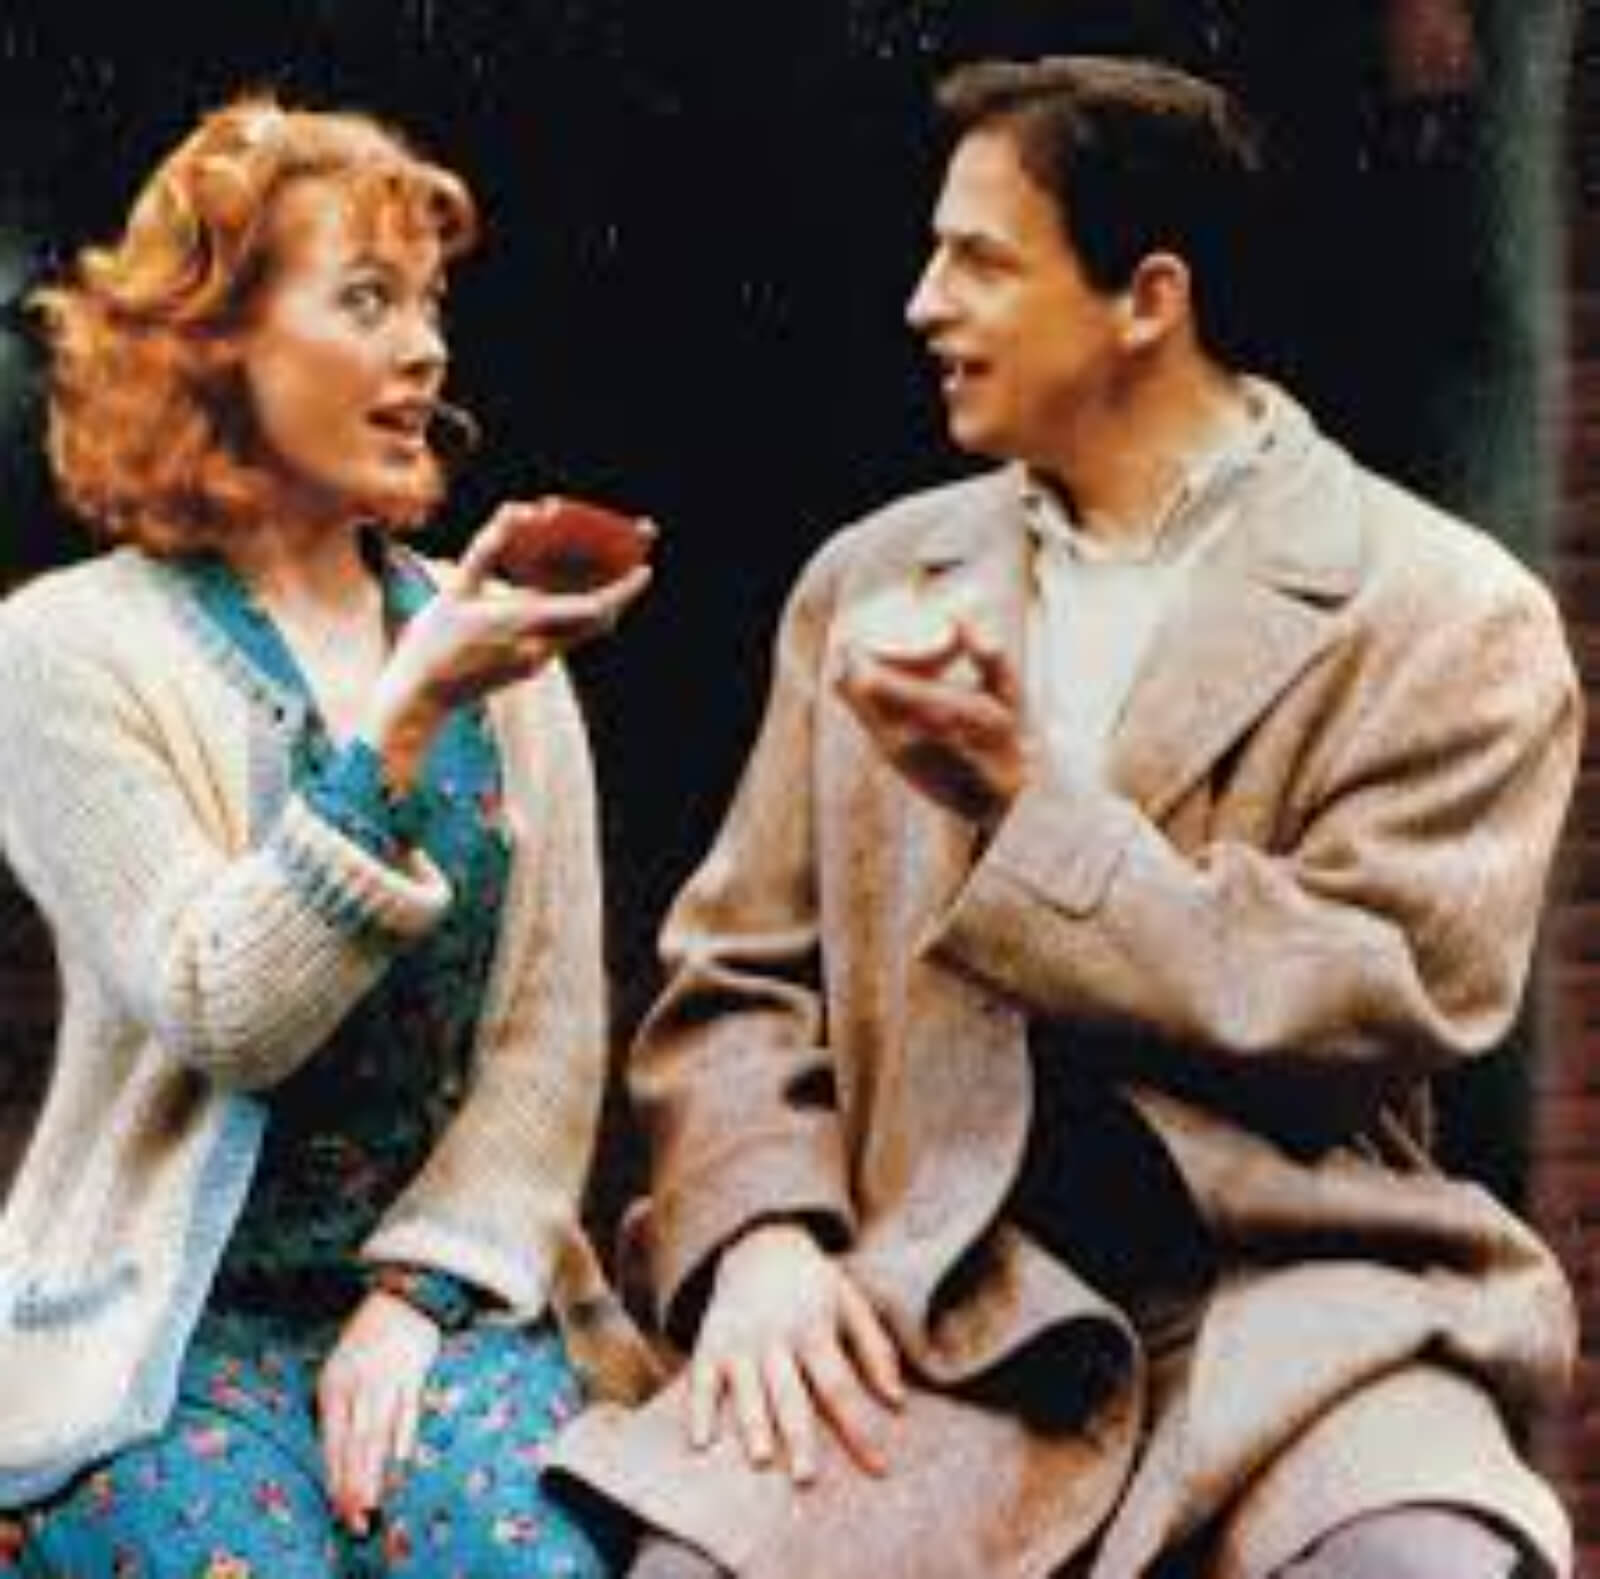 """Flora (Veanna Cox) and Harry (Peter Frechette) sit together for the musical number """"It's Not Every Day of the Week"""" while holding an apple."""